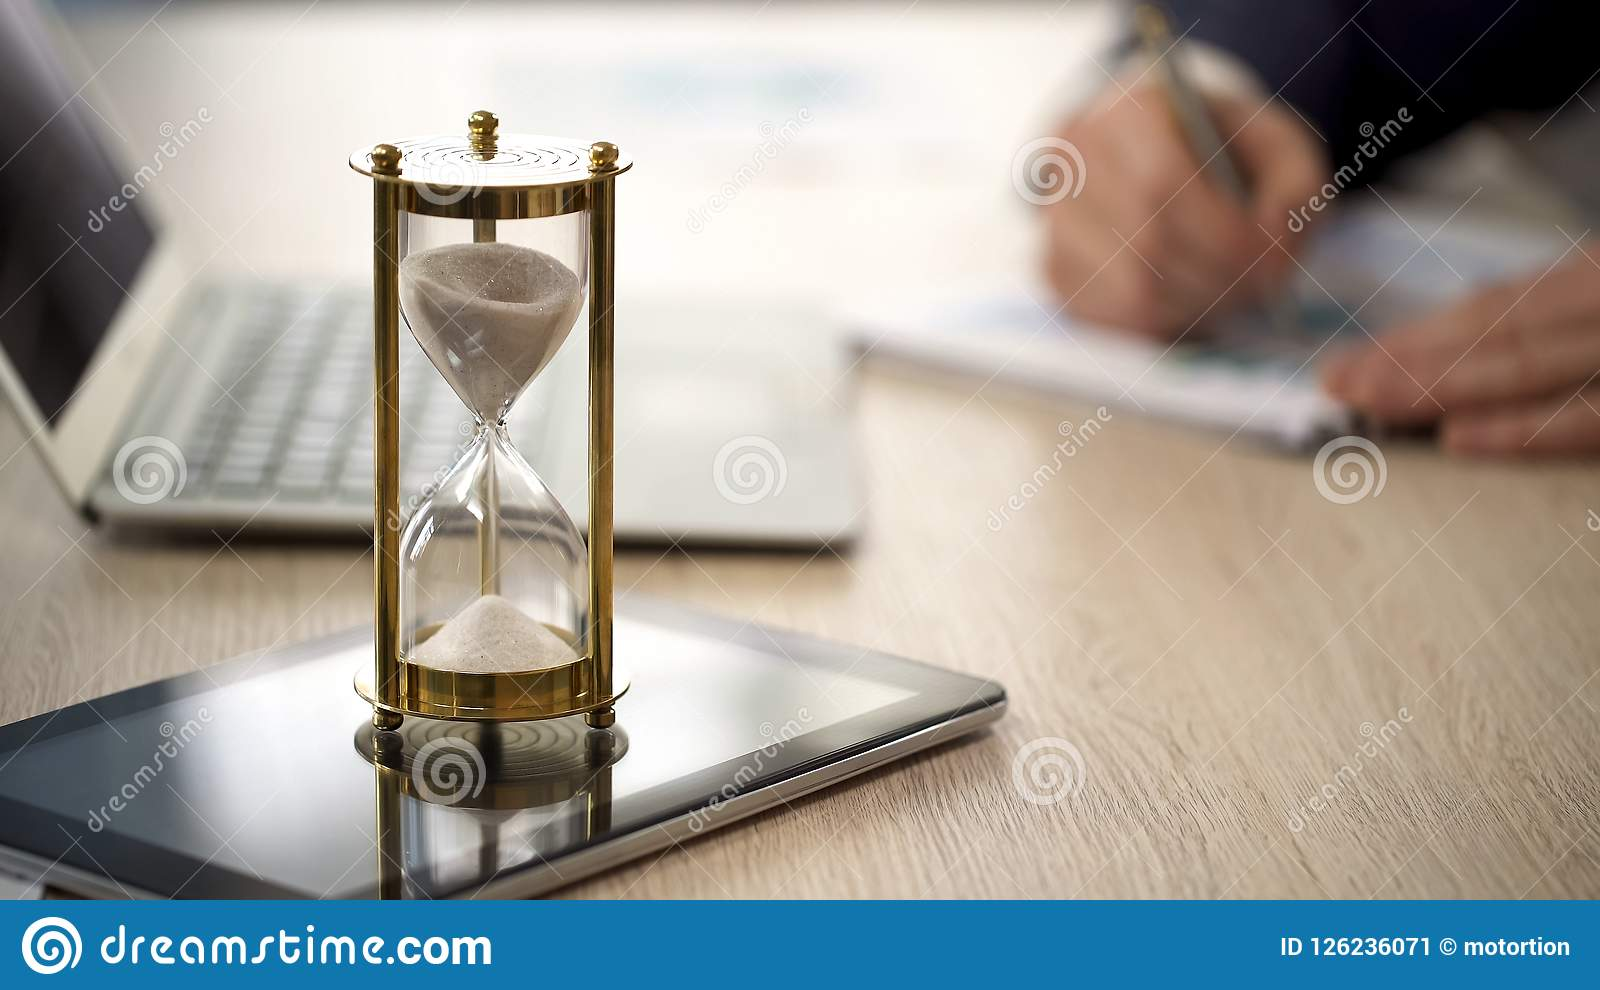 Hourglass standing on table with sand trickling, man working with graphs, data